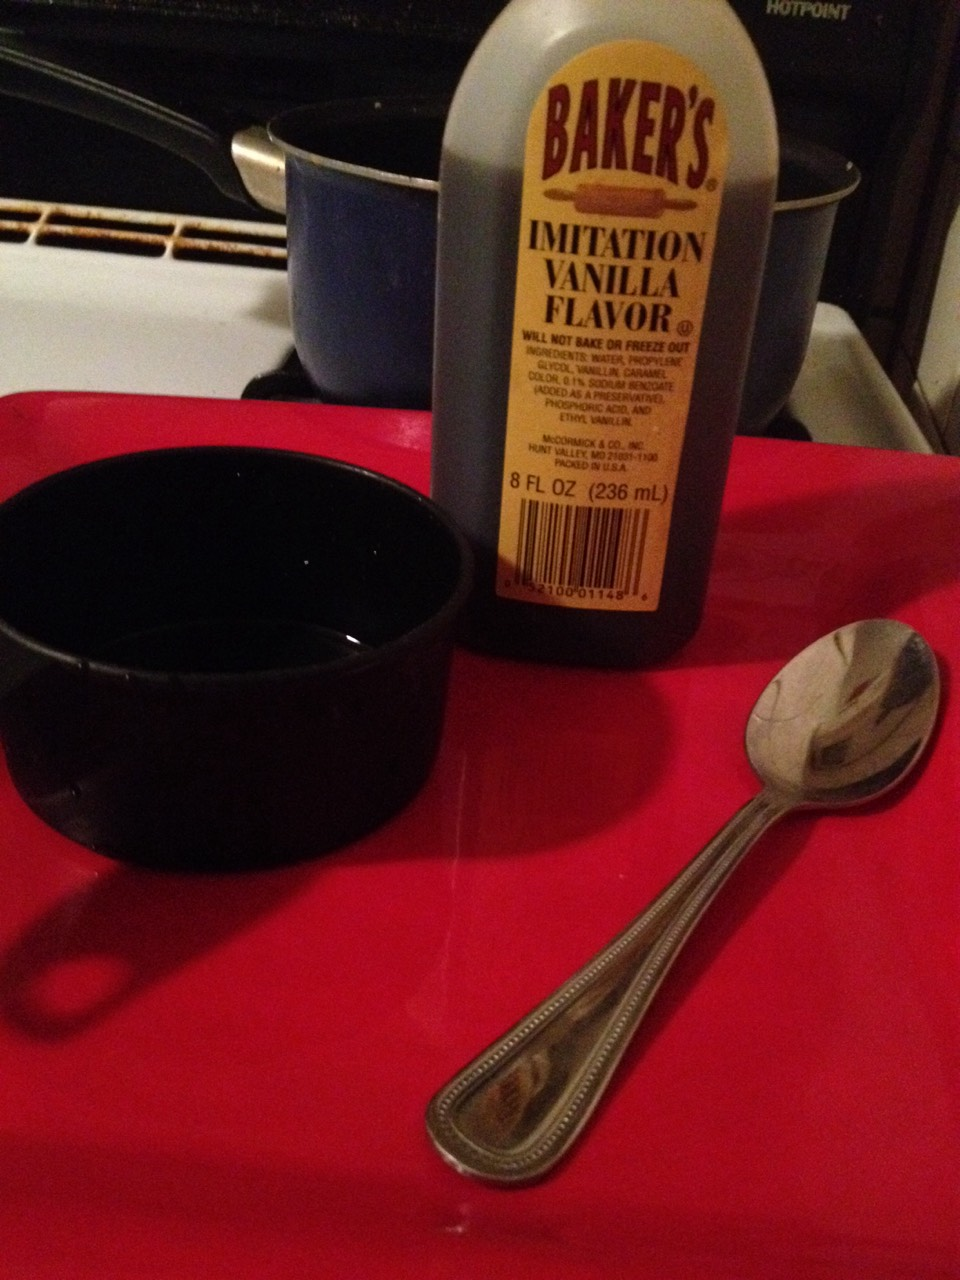 Next put cold water into the measuring cup then pour into saucepan,after you bring to a boil you simply pour 3 spoon fulls of vanilla into sauce pan,and now you have a vanilla smelling home in about 5-10minutes